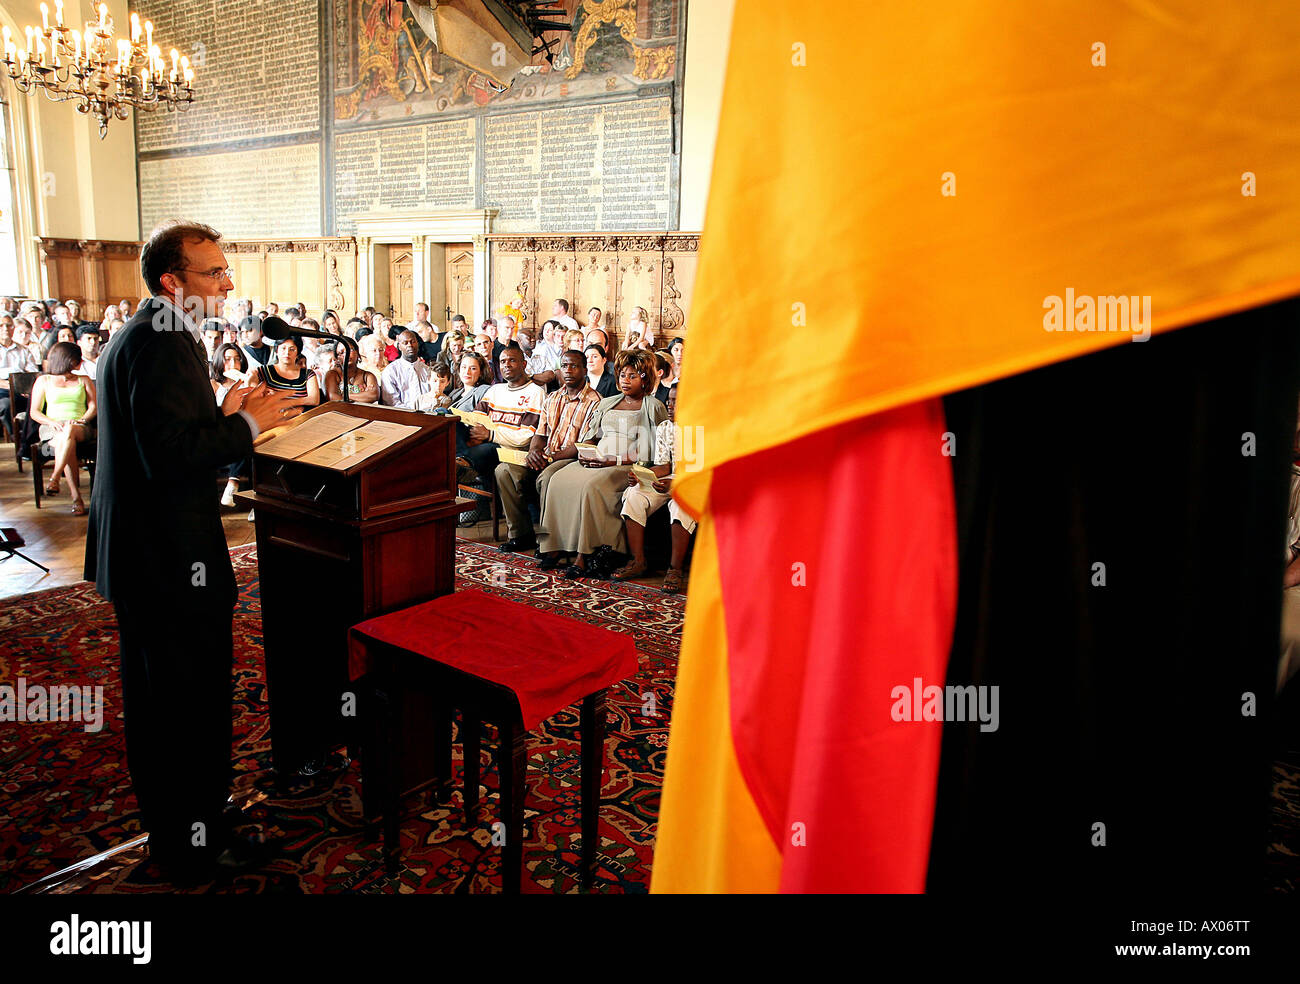 Senator for the interior, Thomas Roewekamp, holding a speech at the city hall in Bremen, Germany - Stock Image